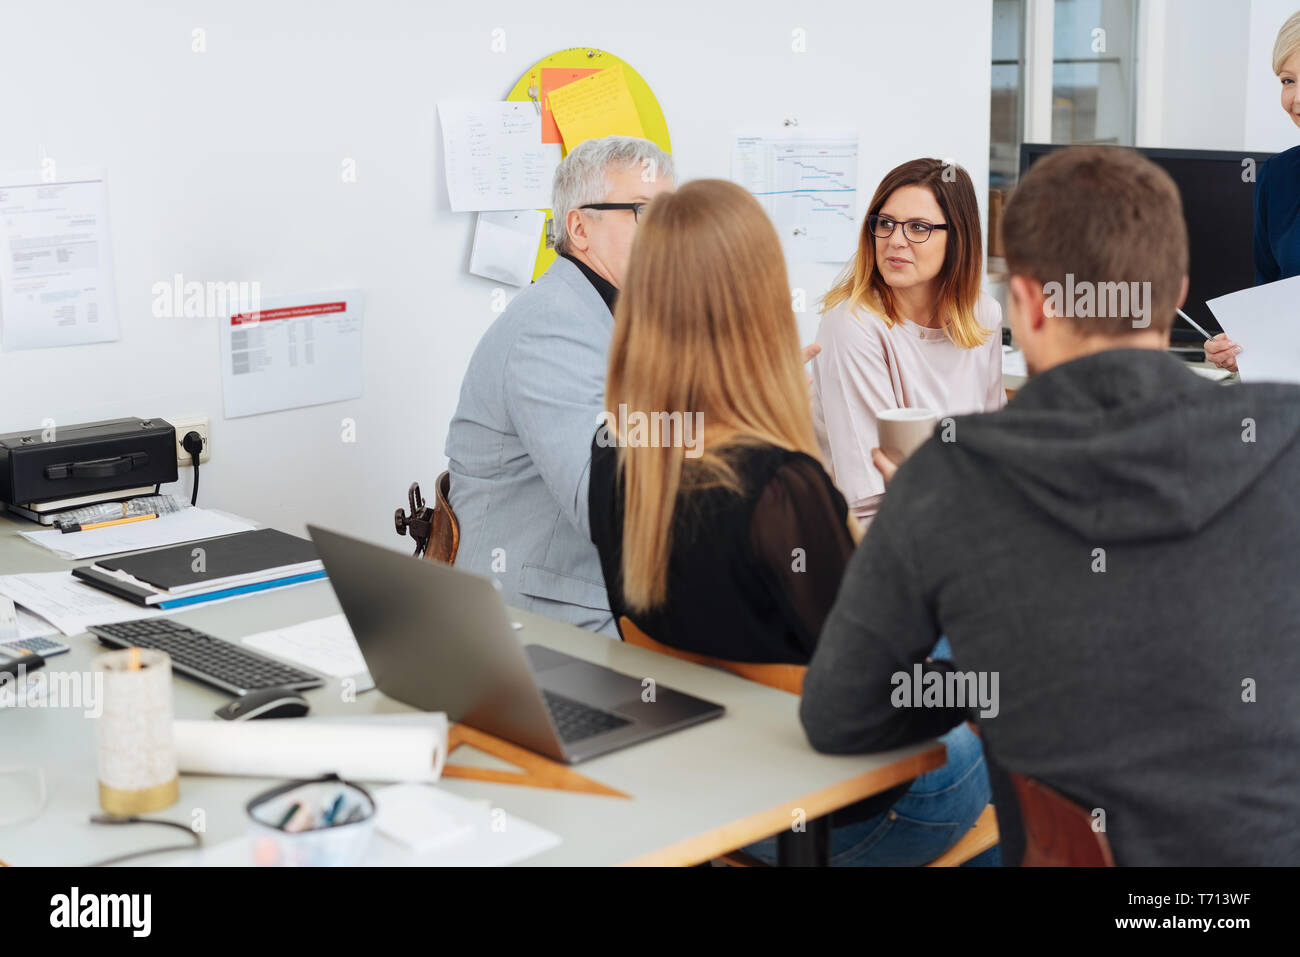 Co-workers in a brainstorming session at the office sitting around in a circle having a discussion with a view over a desk to a woman in the back of t - Stock Image